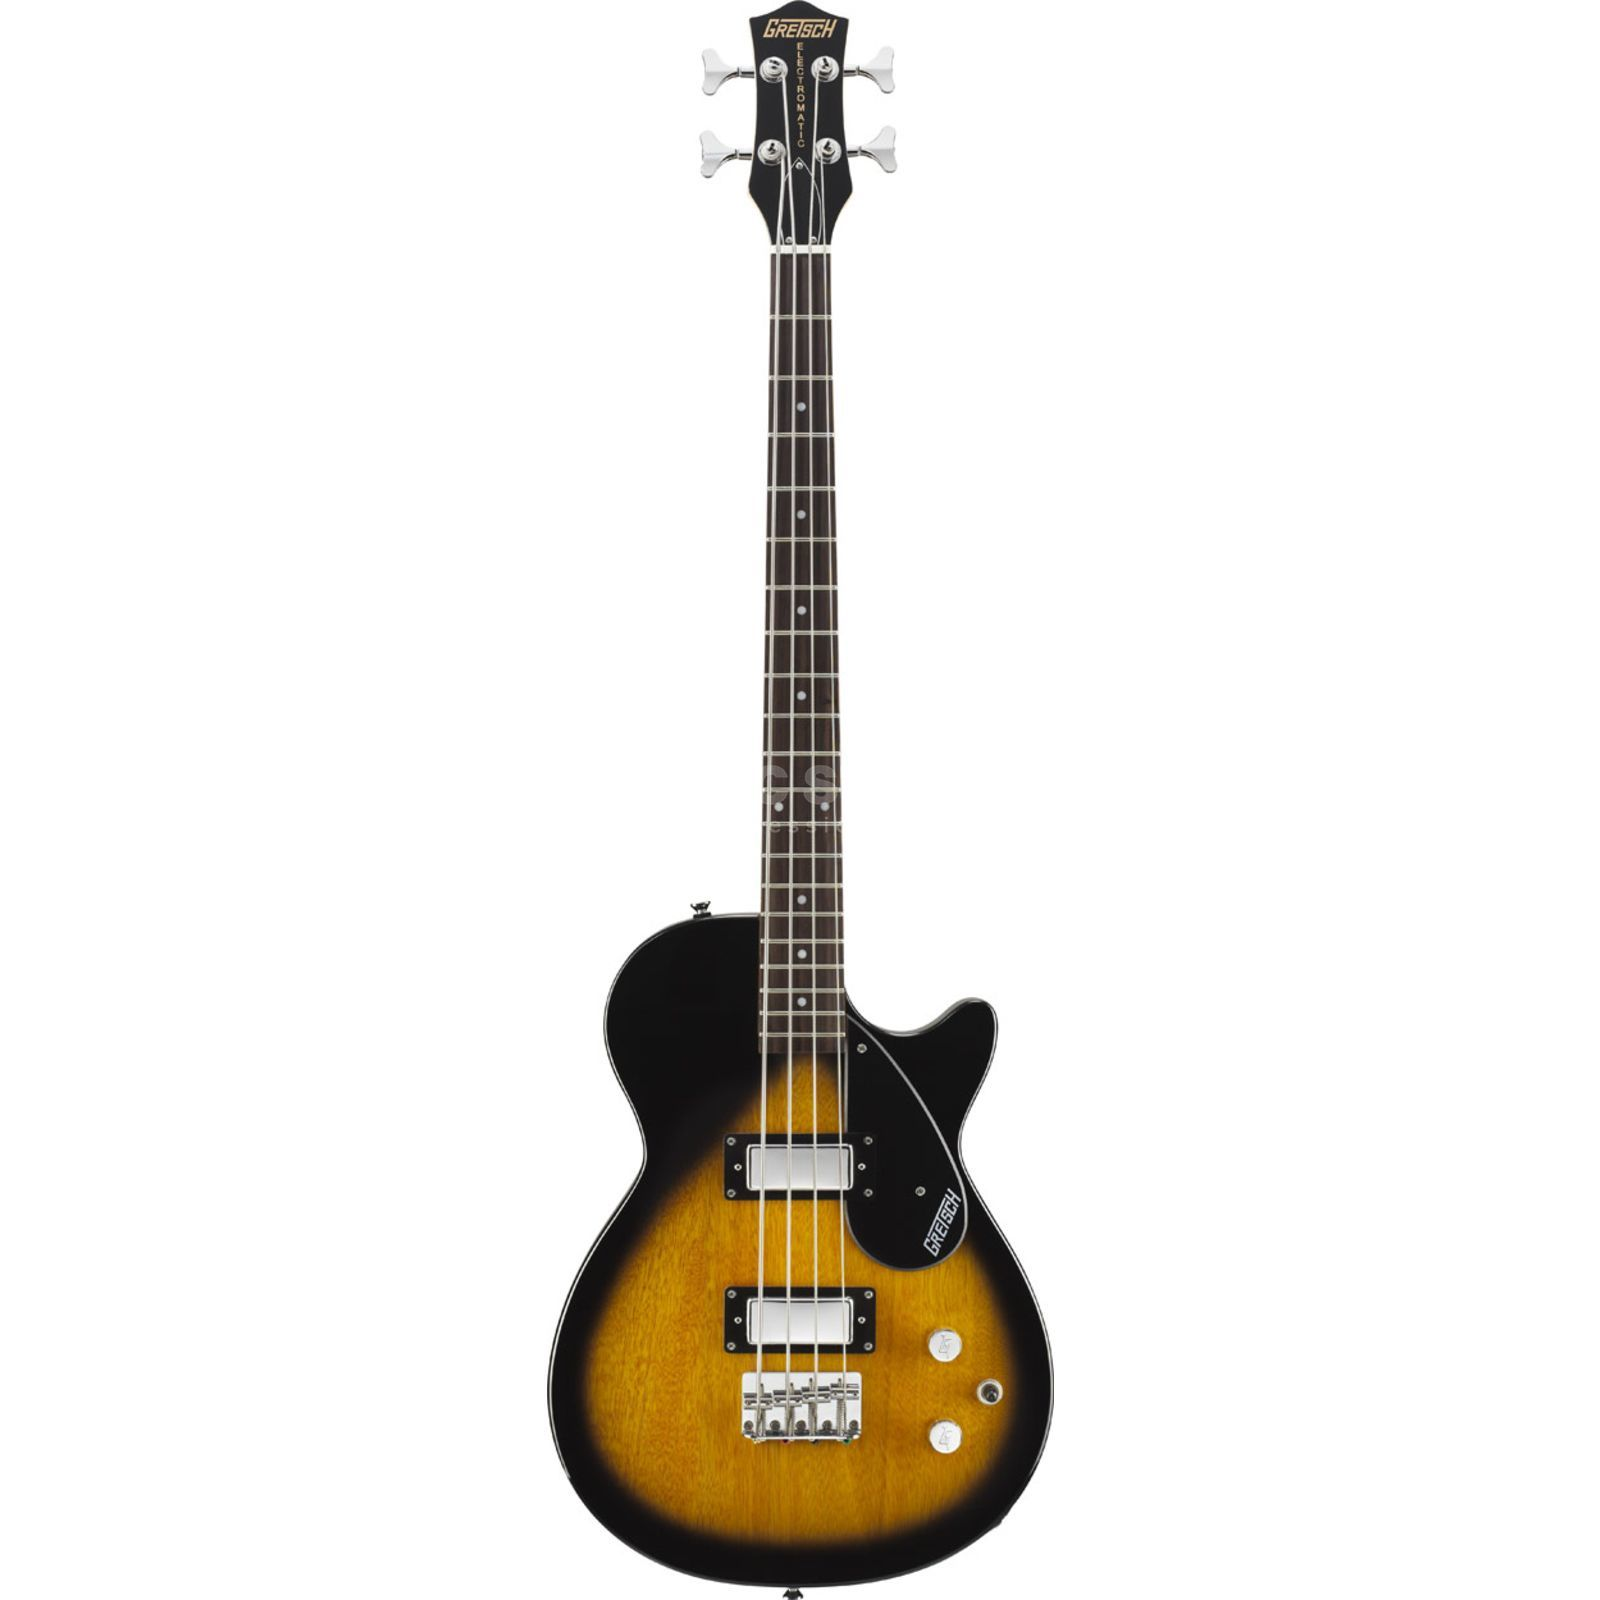 Gretsch G2220 Junior Jet II Bass Guita r, Tobacco Sunburst   Product Image